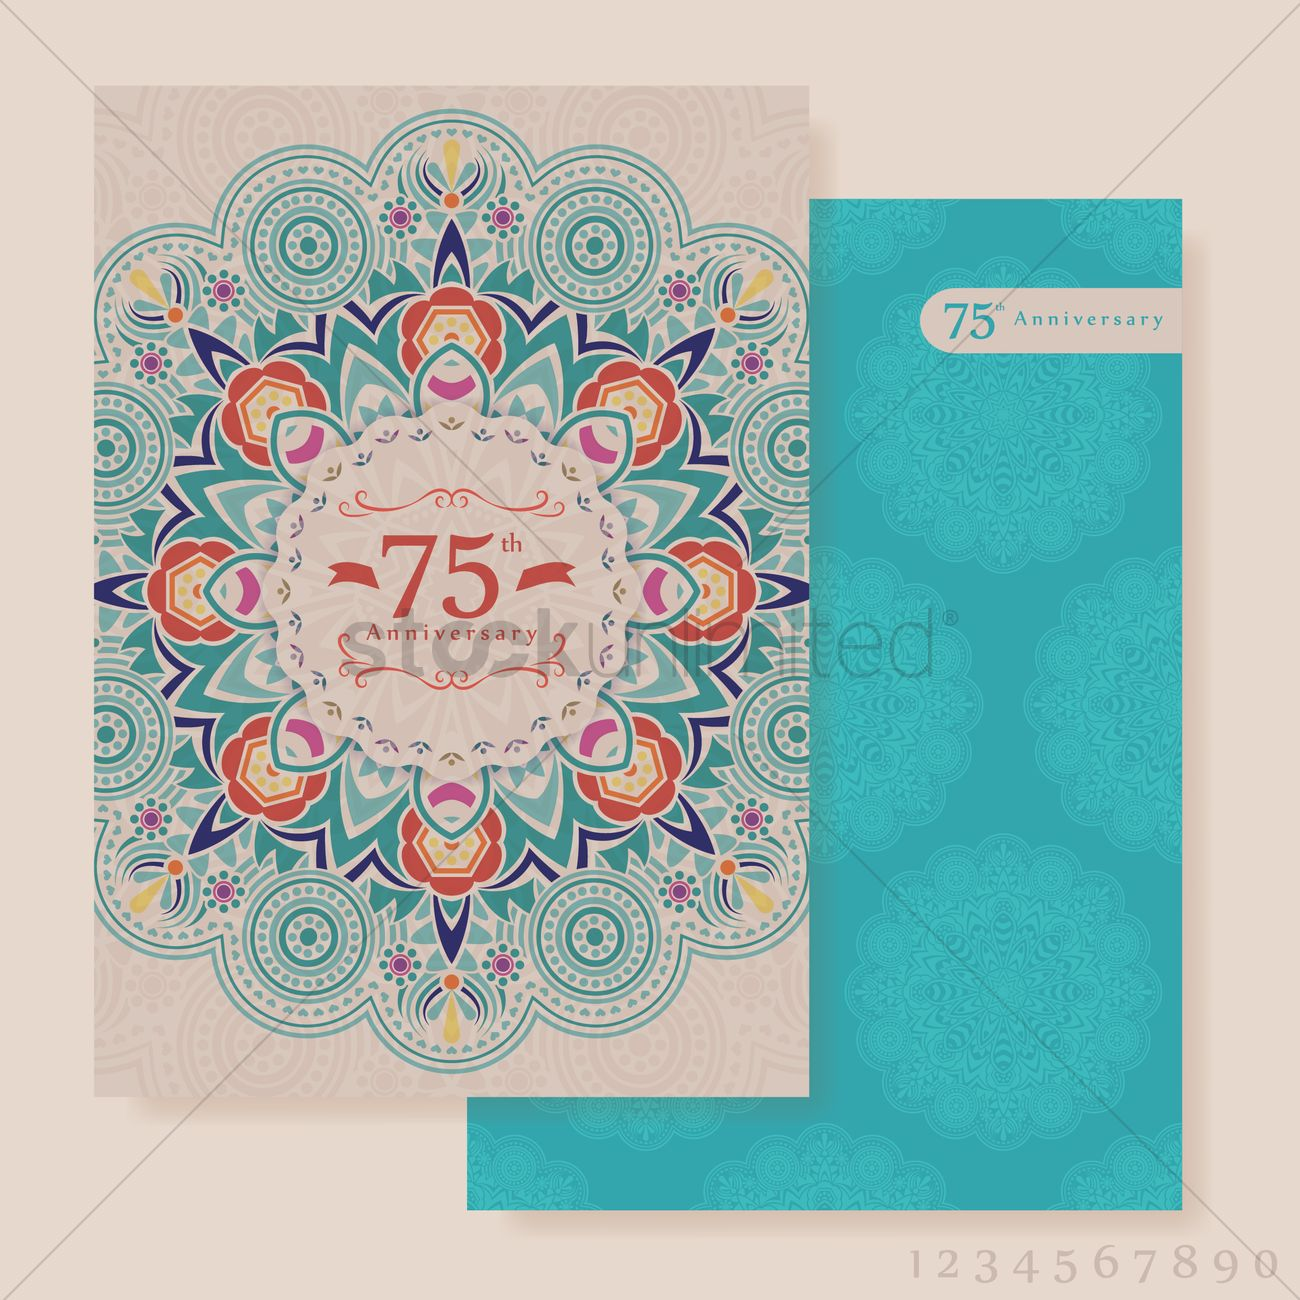 Anniversary invitation vector image 1826114 stockunlimited anniversary invitation vector graphic stopboris Image collections